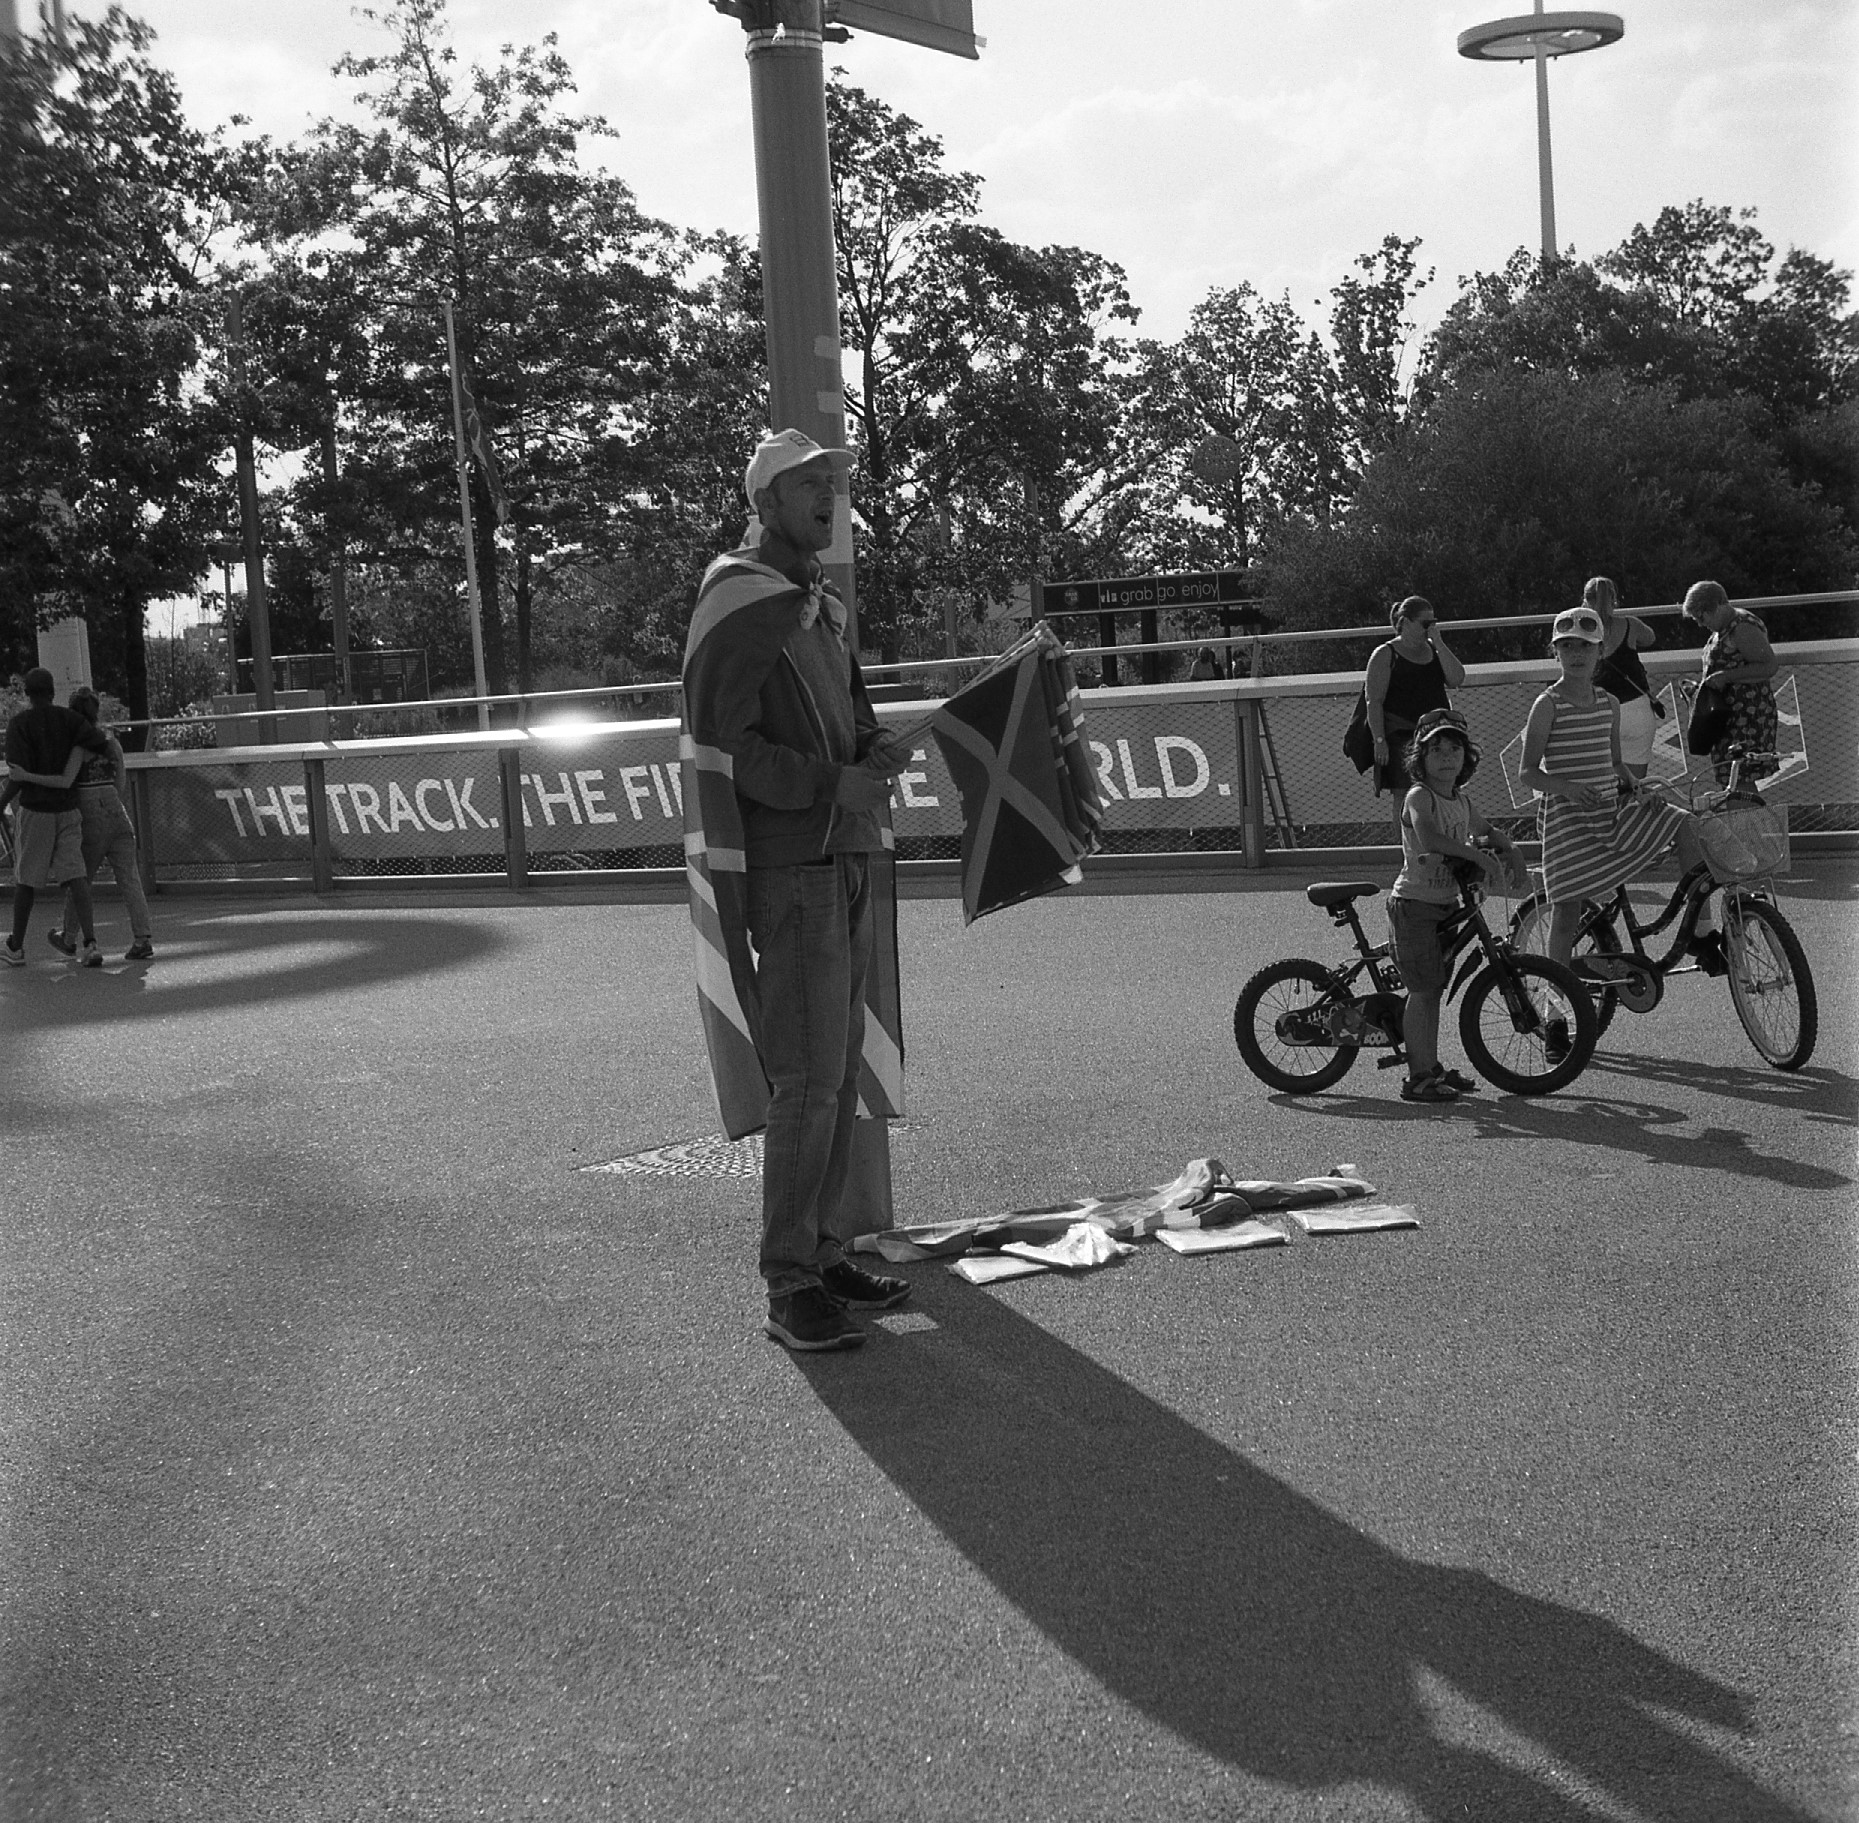 yashica 44 tlr rerapan 100 bellini hydrofen london olympic stadium 127 format film black white street flag seller world athletics